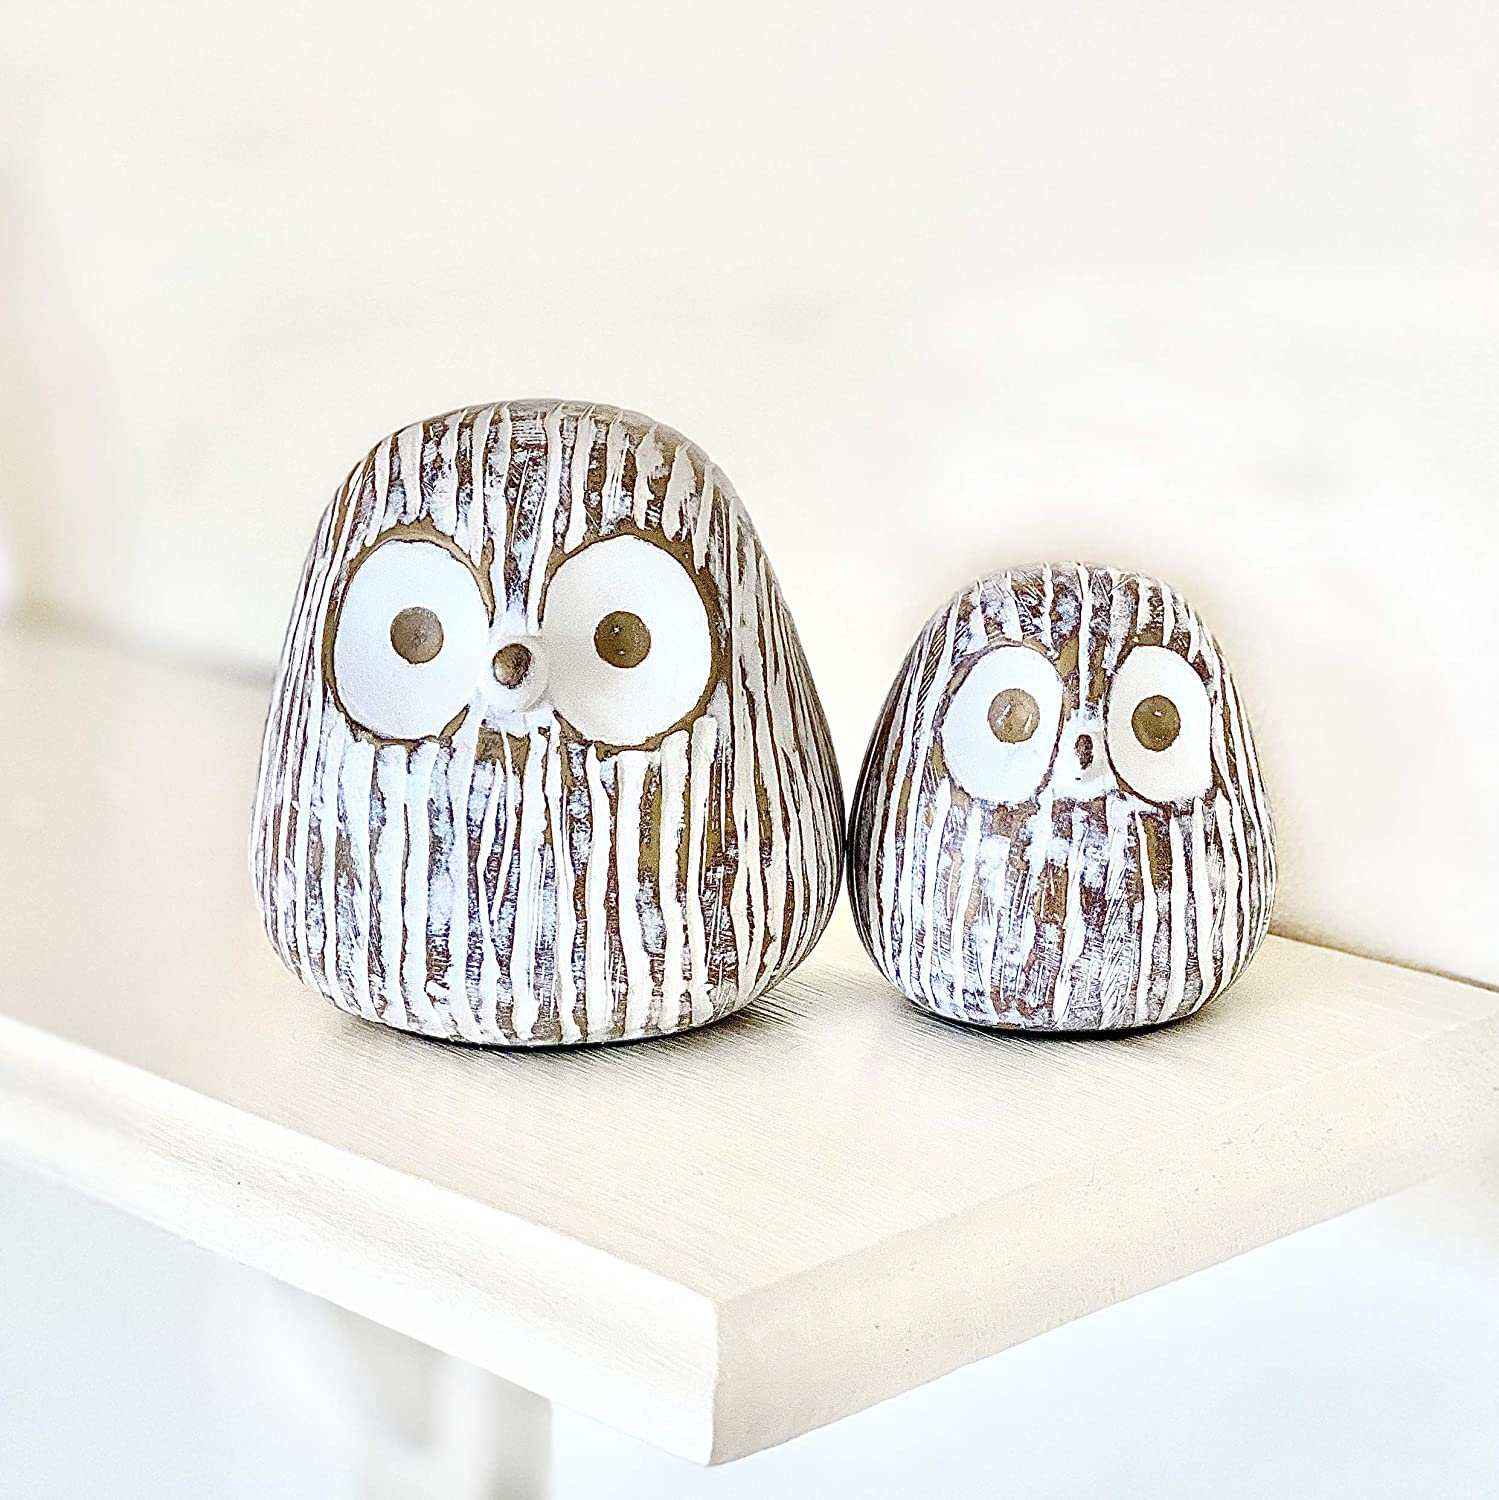 Huey House Chubby Night Owl Decor Statue Sculpture, Bookshelf Decor Accents, Boxed Set of 2 Rustic Brown & White Decorative Figurines